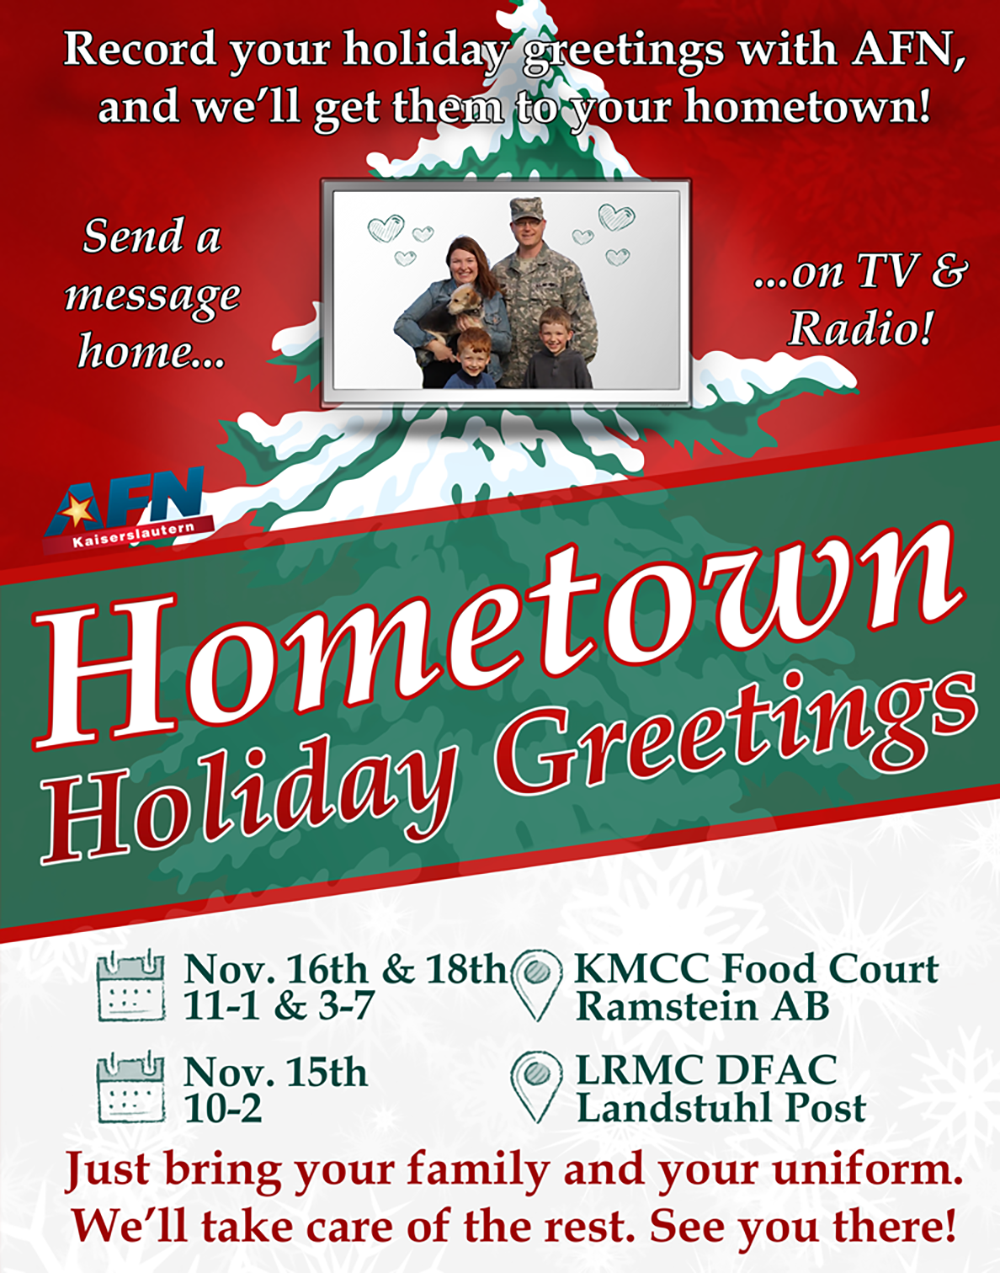 Afn to record hometown holiday greetings stripes europe greeting represents all the men and women serving in the armed forces and these greetings are a reminder that not everyone is home with their family m4hsunfo